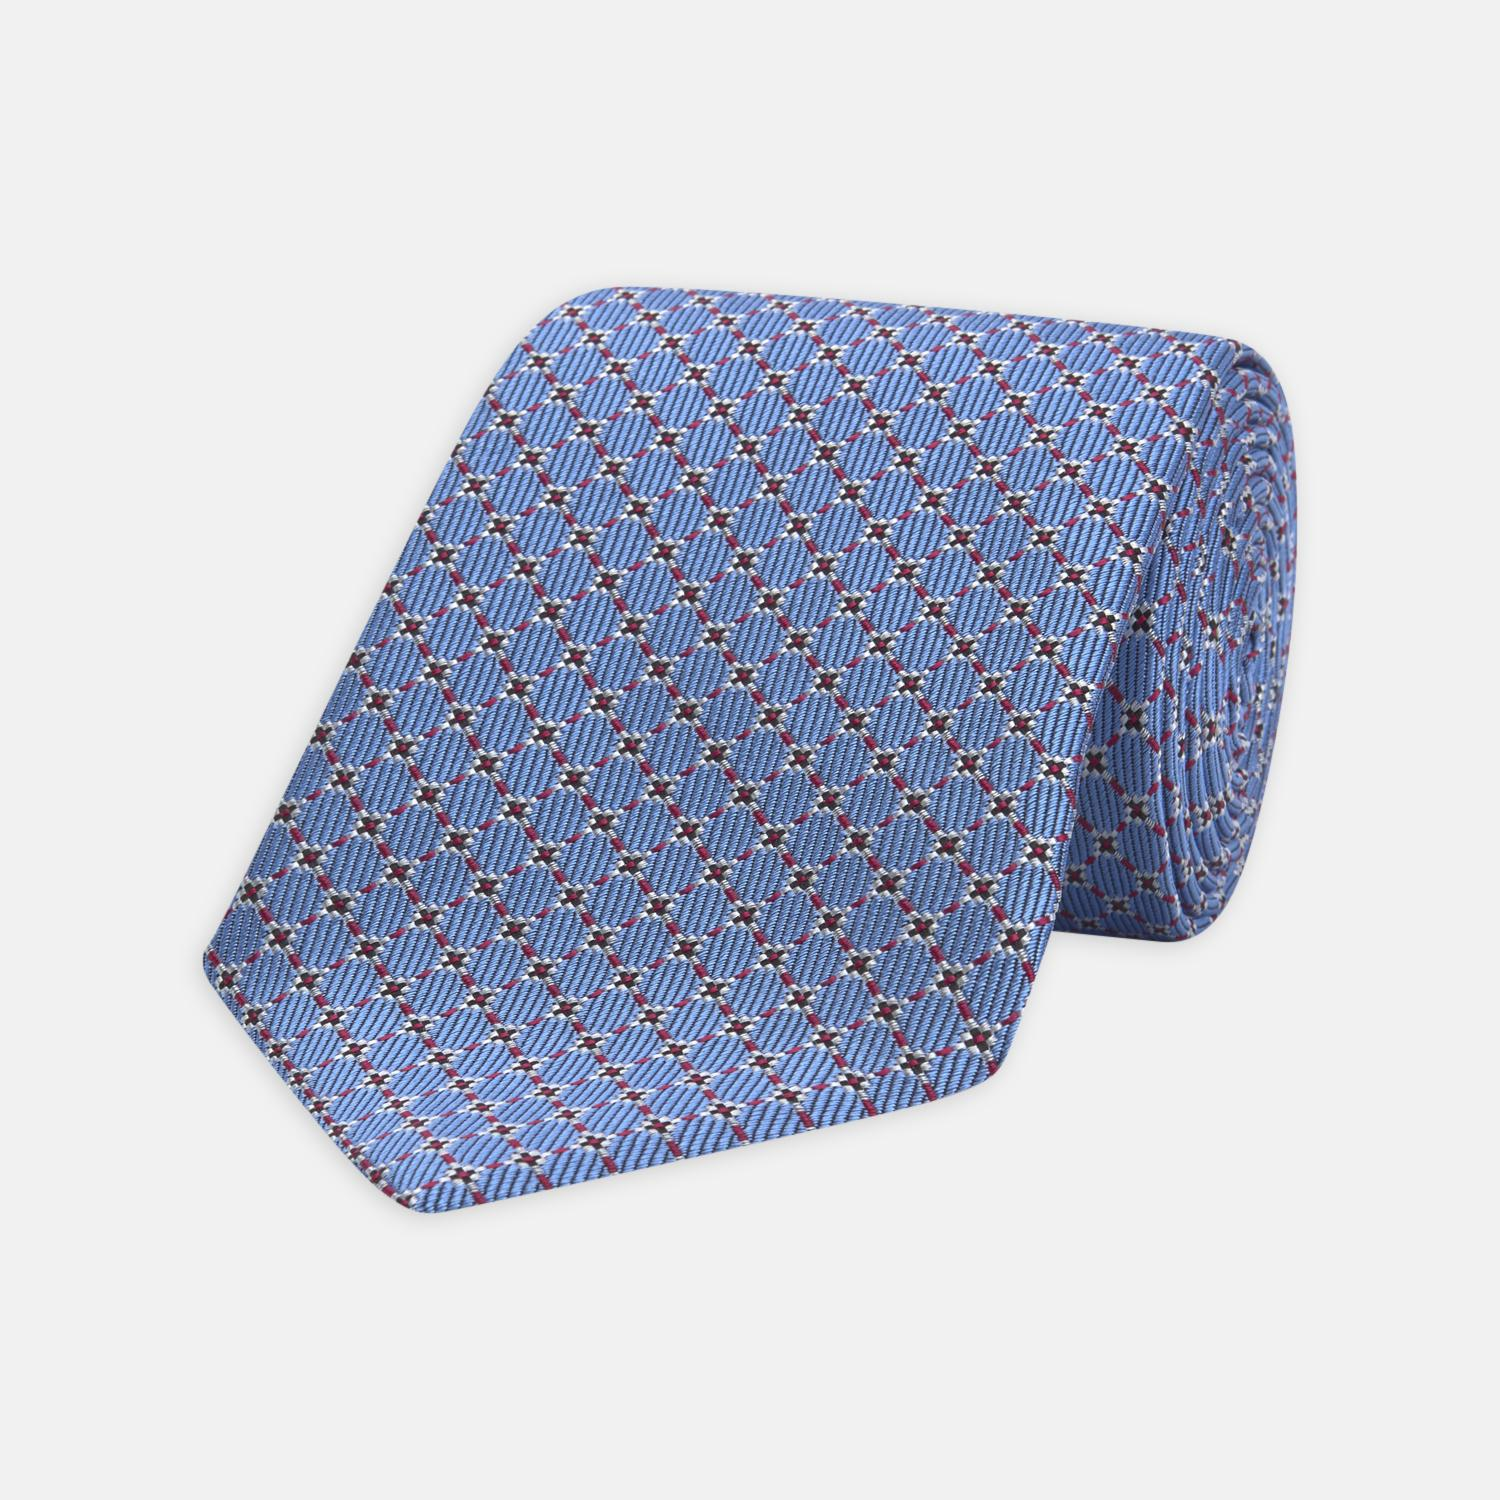 Cheap Sale Lowest Price Navy and Yellow Floral and Puppytooth Jacquard Weave Silk Tie Turnbull & Asser Cheap Sale New Arrival Popular For Sale Cheap Buy Authentic 1JLdr3